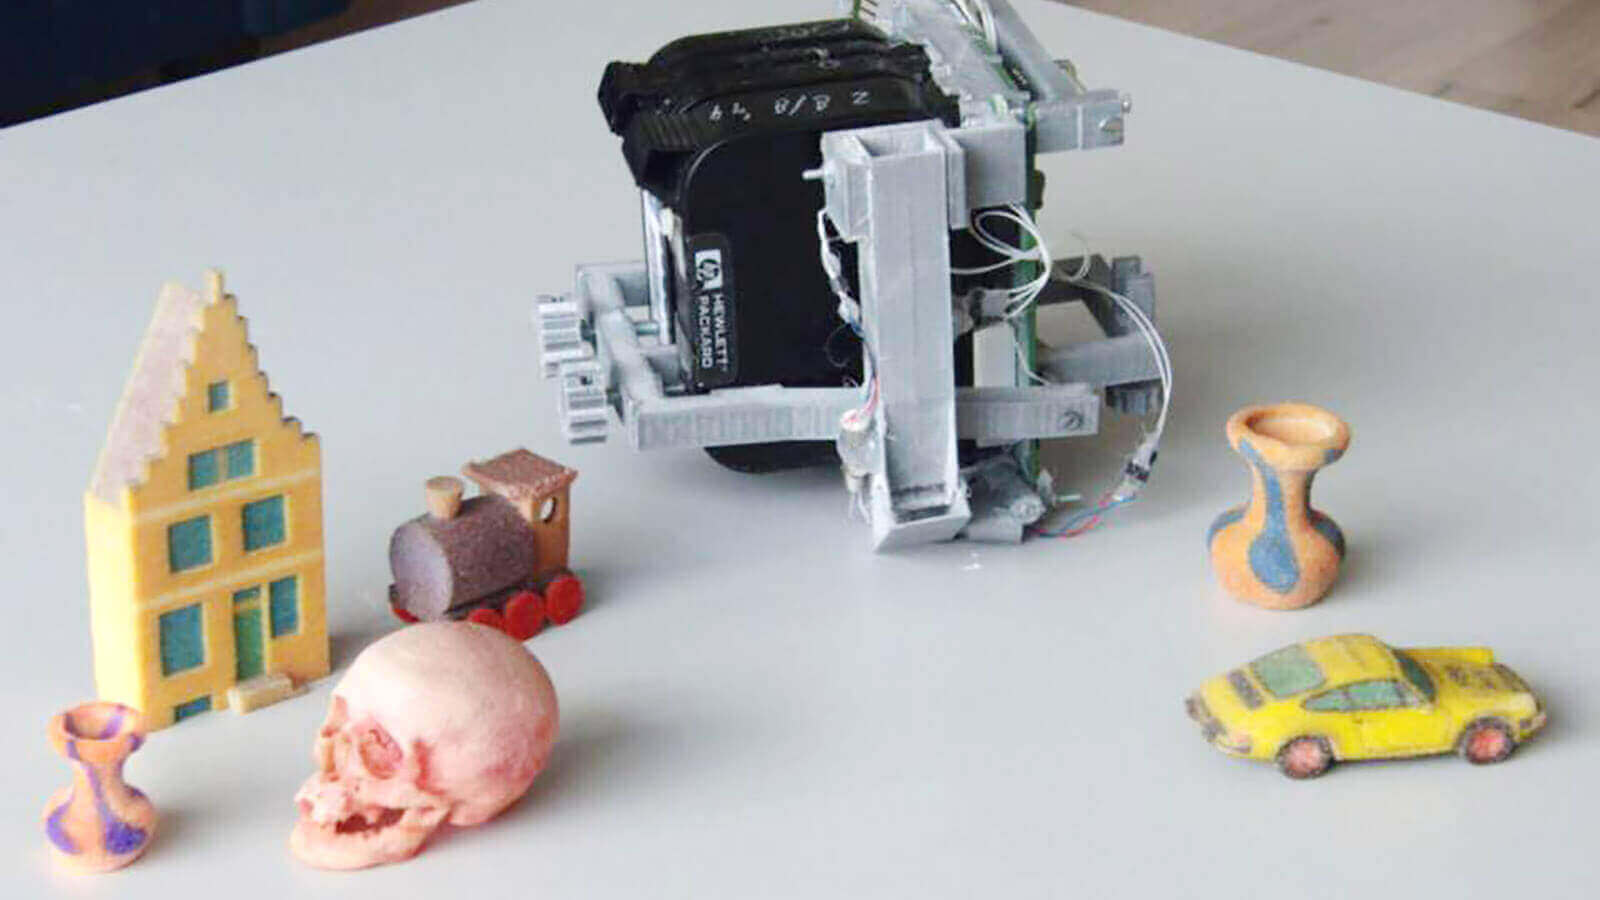 Turn Your 3D Printer into a Full-Color Candy Machine | All3DP